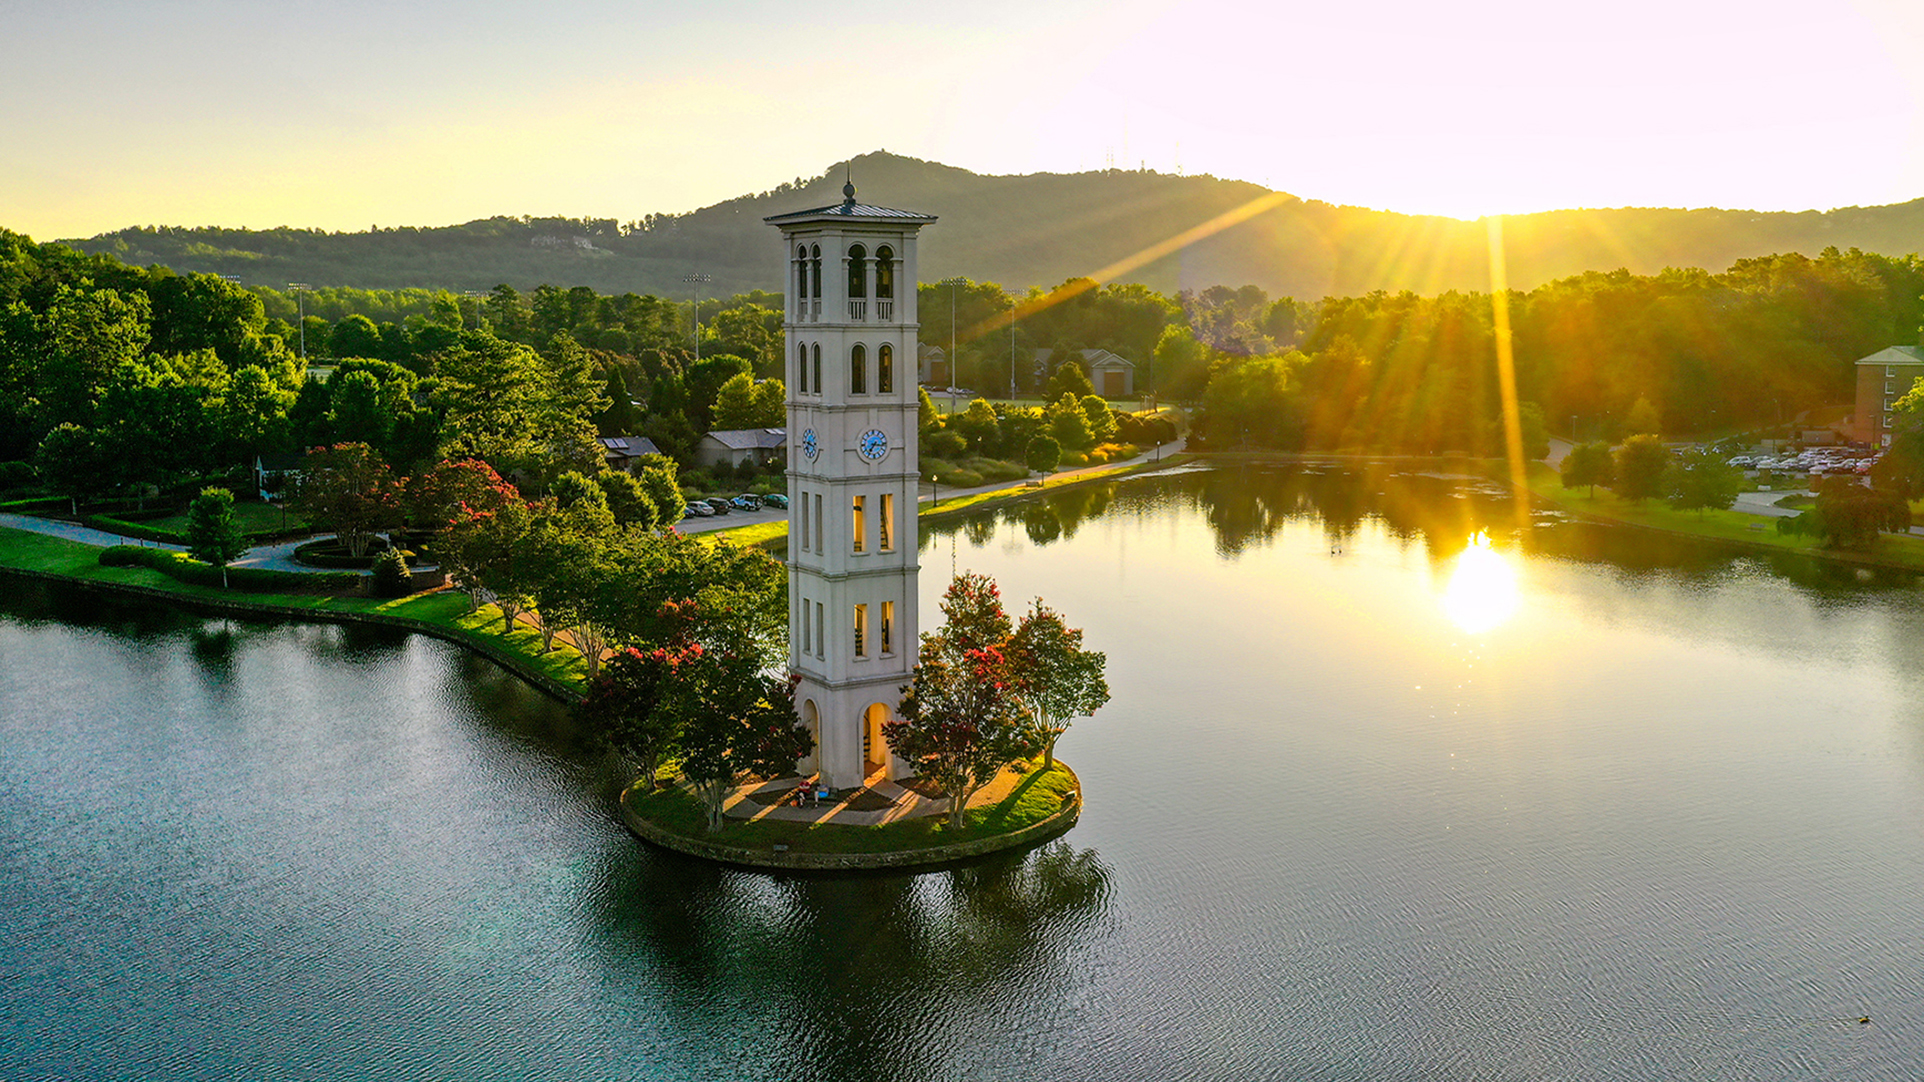 The Furman bell tower